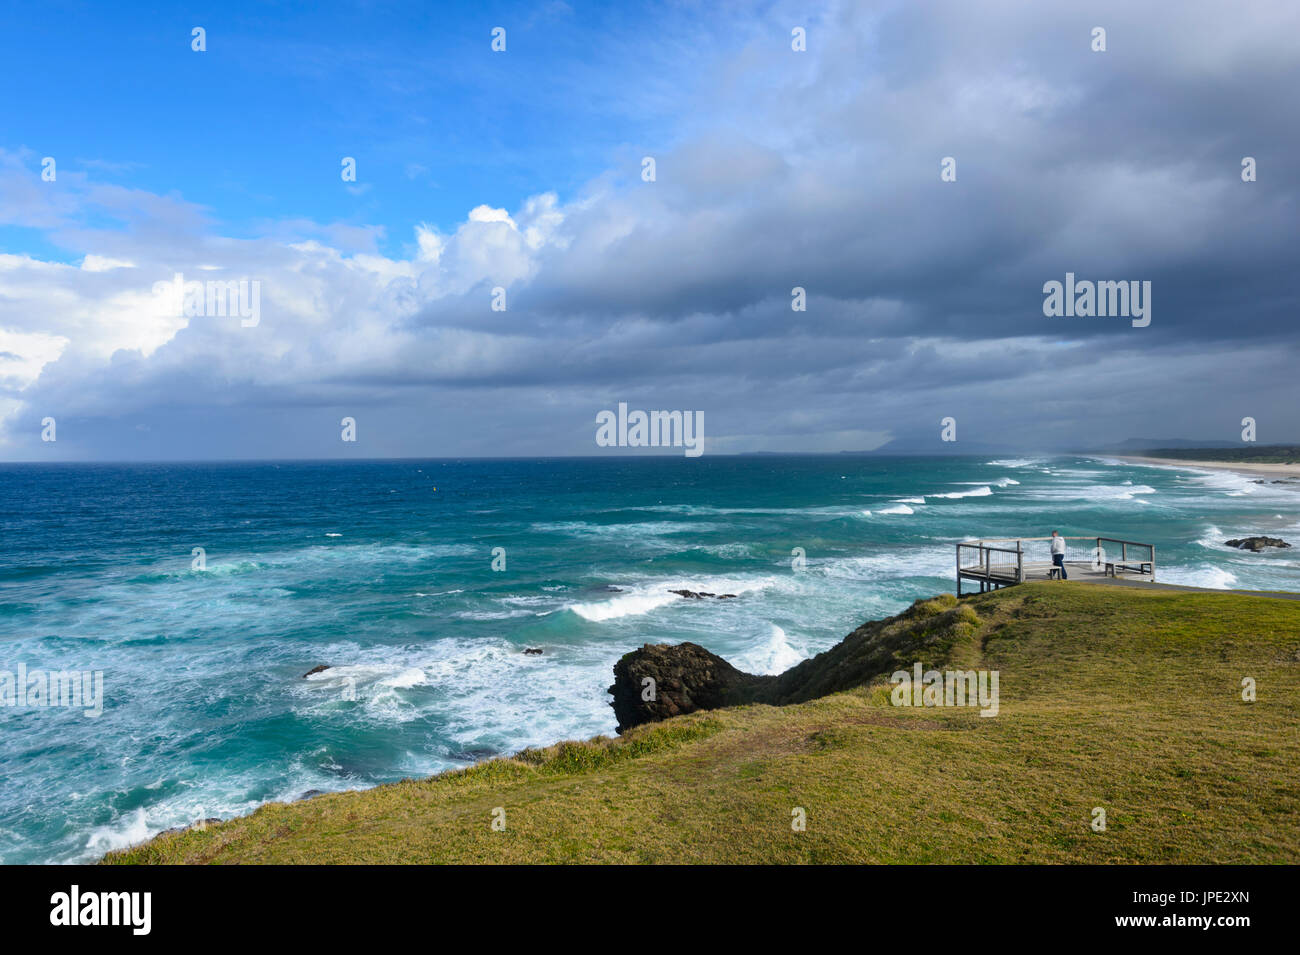 View from Tacking Point, Port Macquarie, New South Wales, NSW, Australia - Stock Image